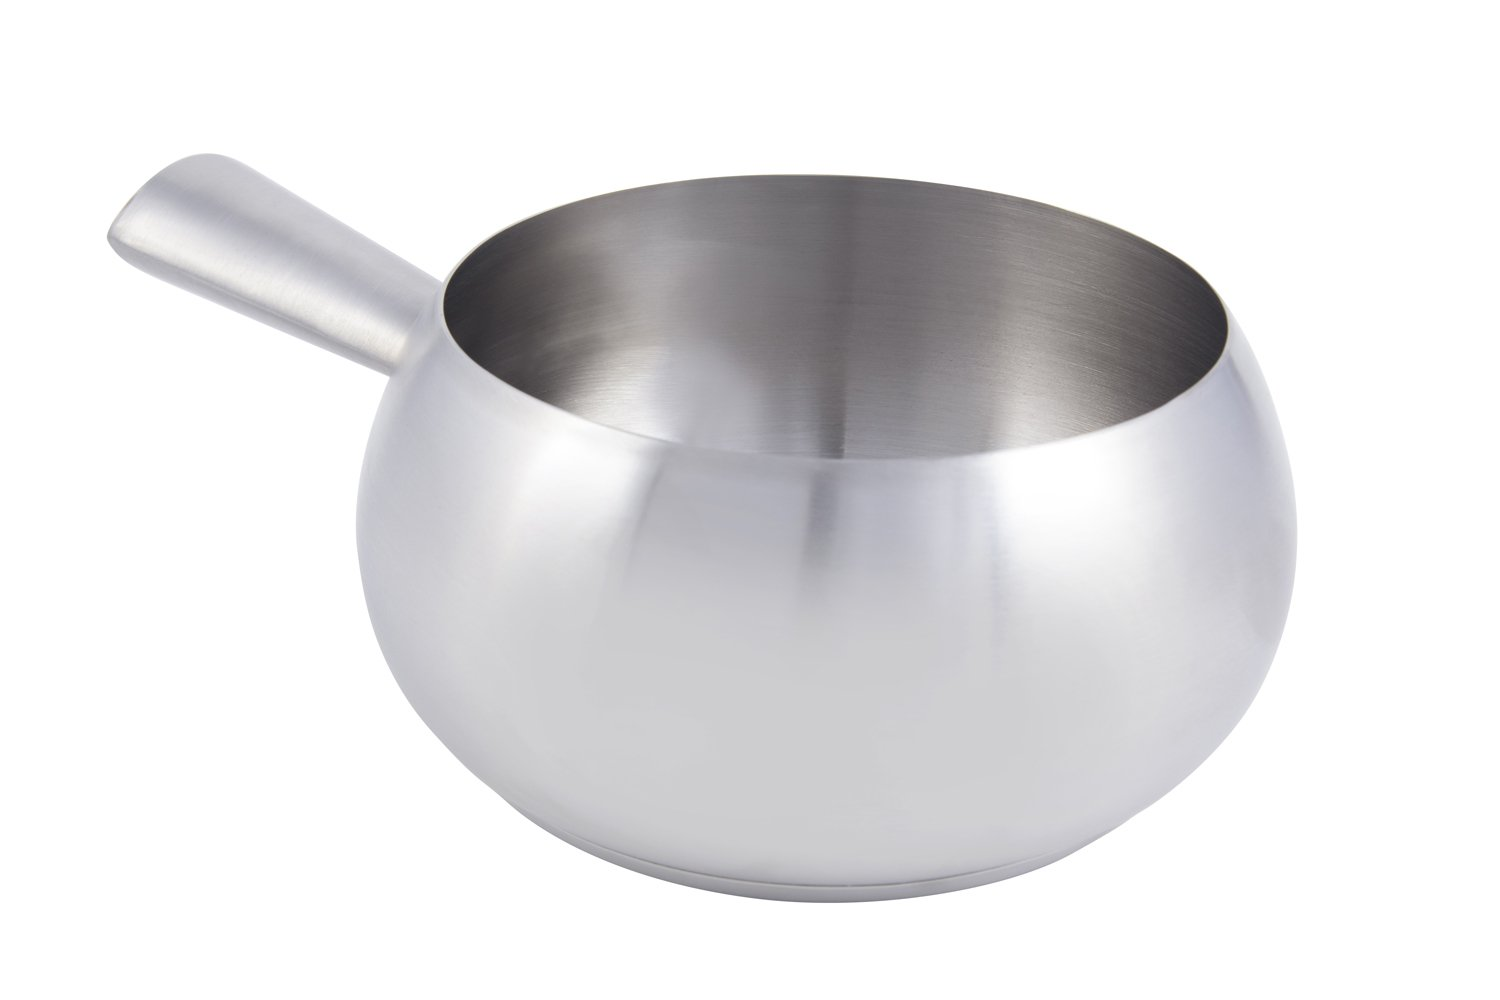 Bon Chef 5150SS Stainless Steel Induction Bottom Fondue Pot with Tapered Handle, 6'' Diameter x 4'' Height